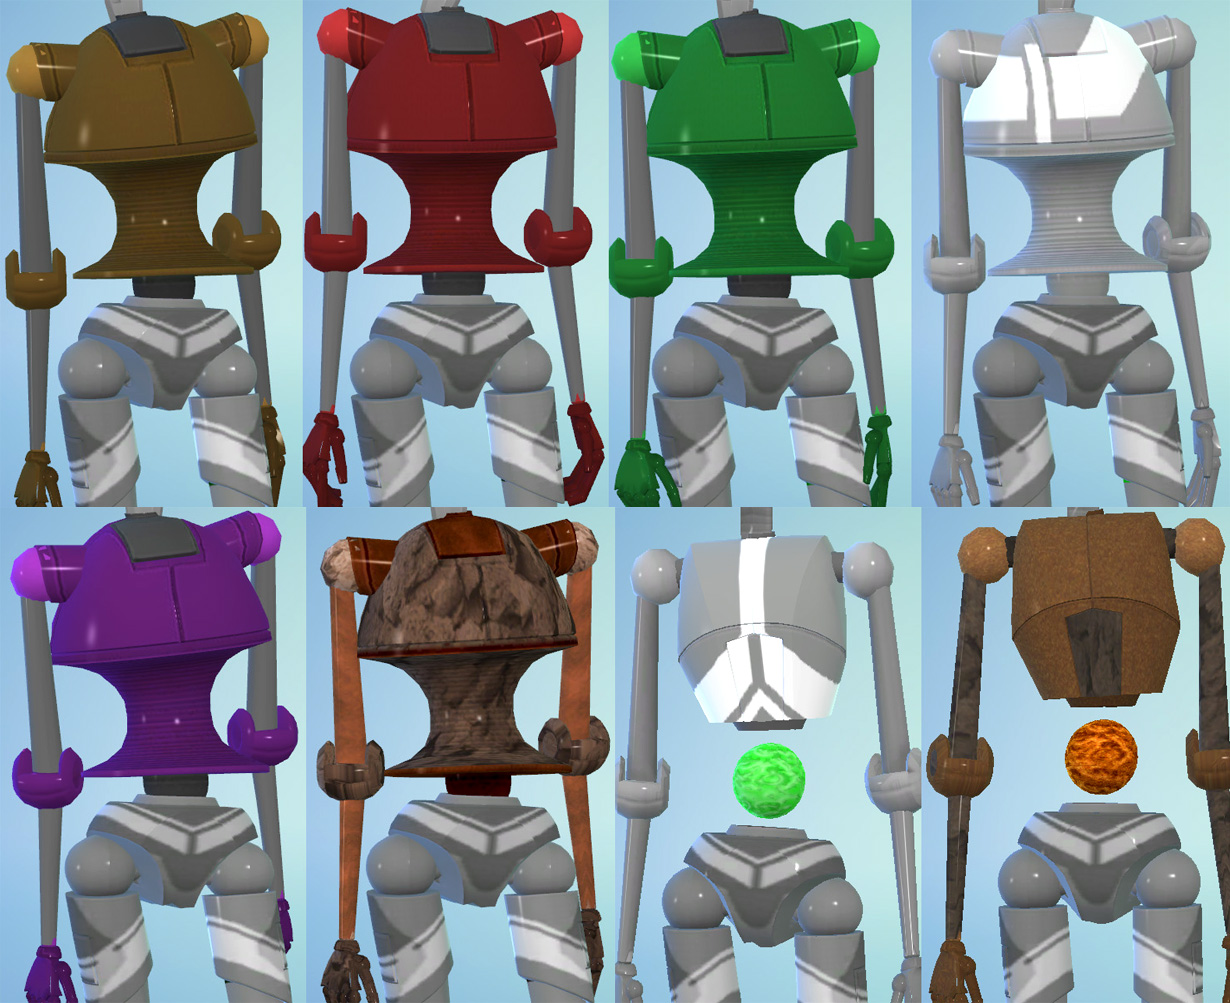 Mod The Sims - Plumbots from TS3: 13 Parts to Mix + Match